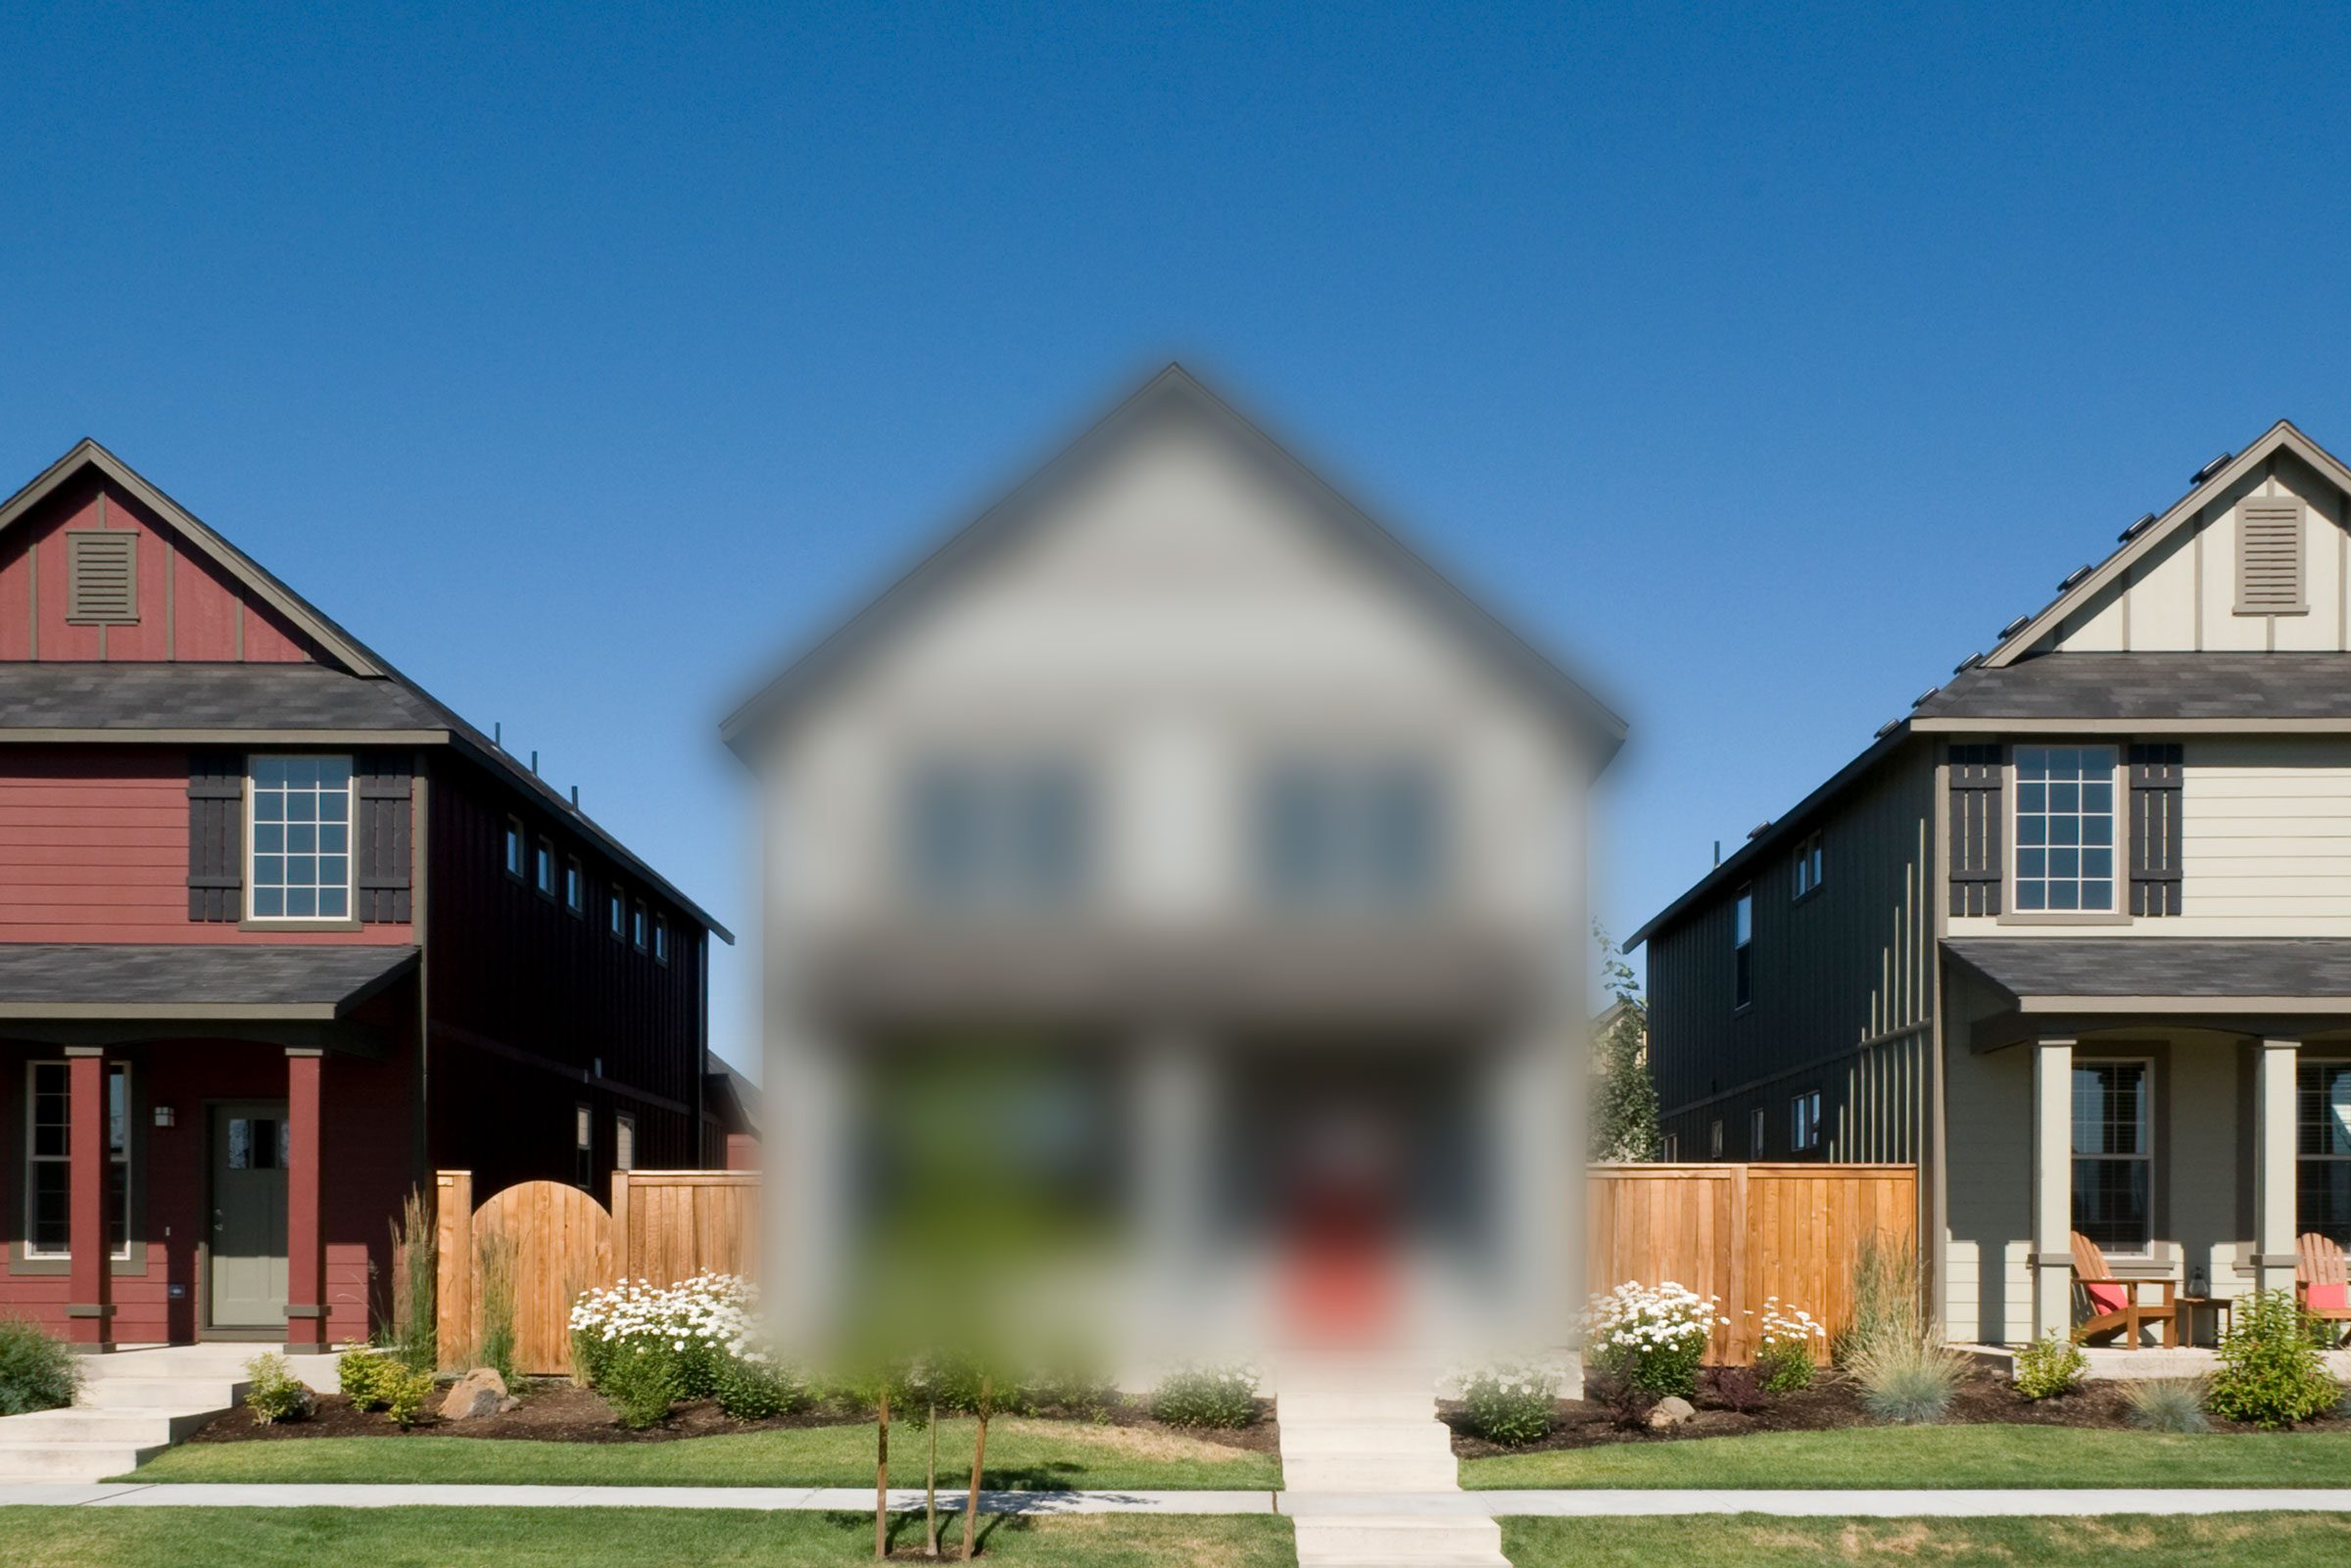 row of houses with center house blurred